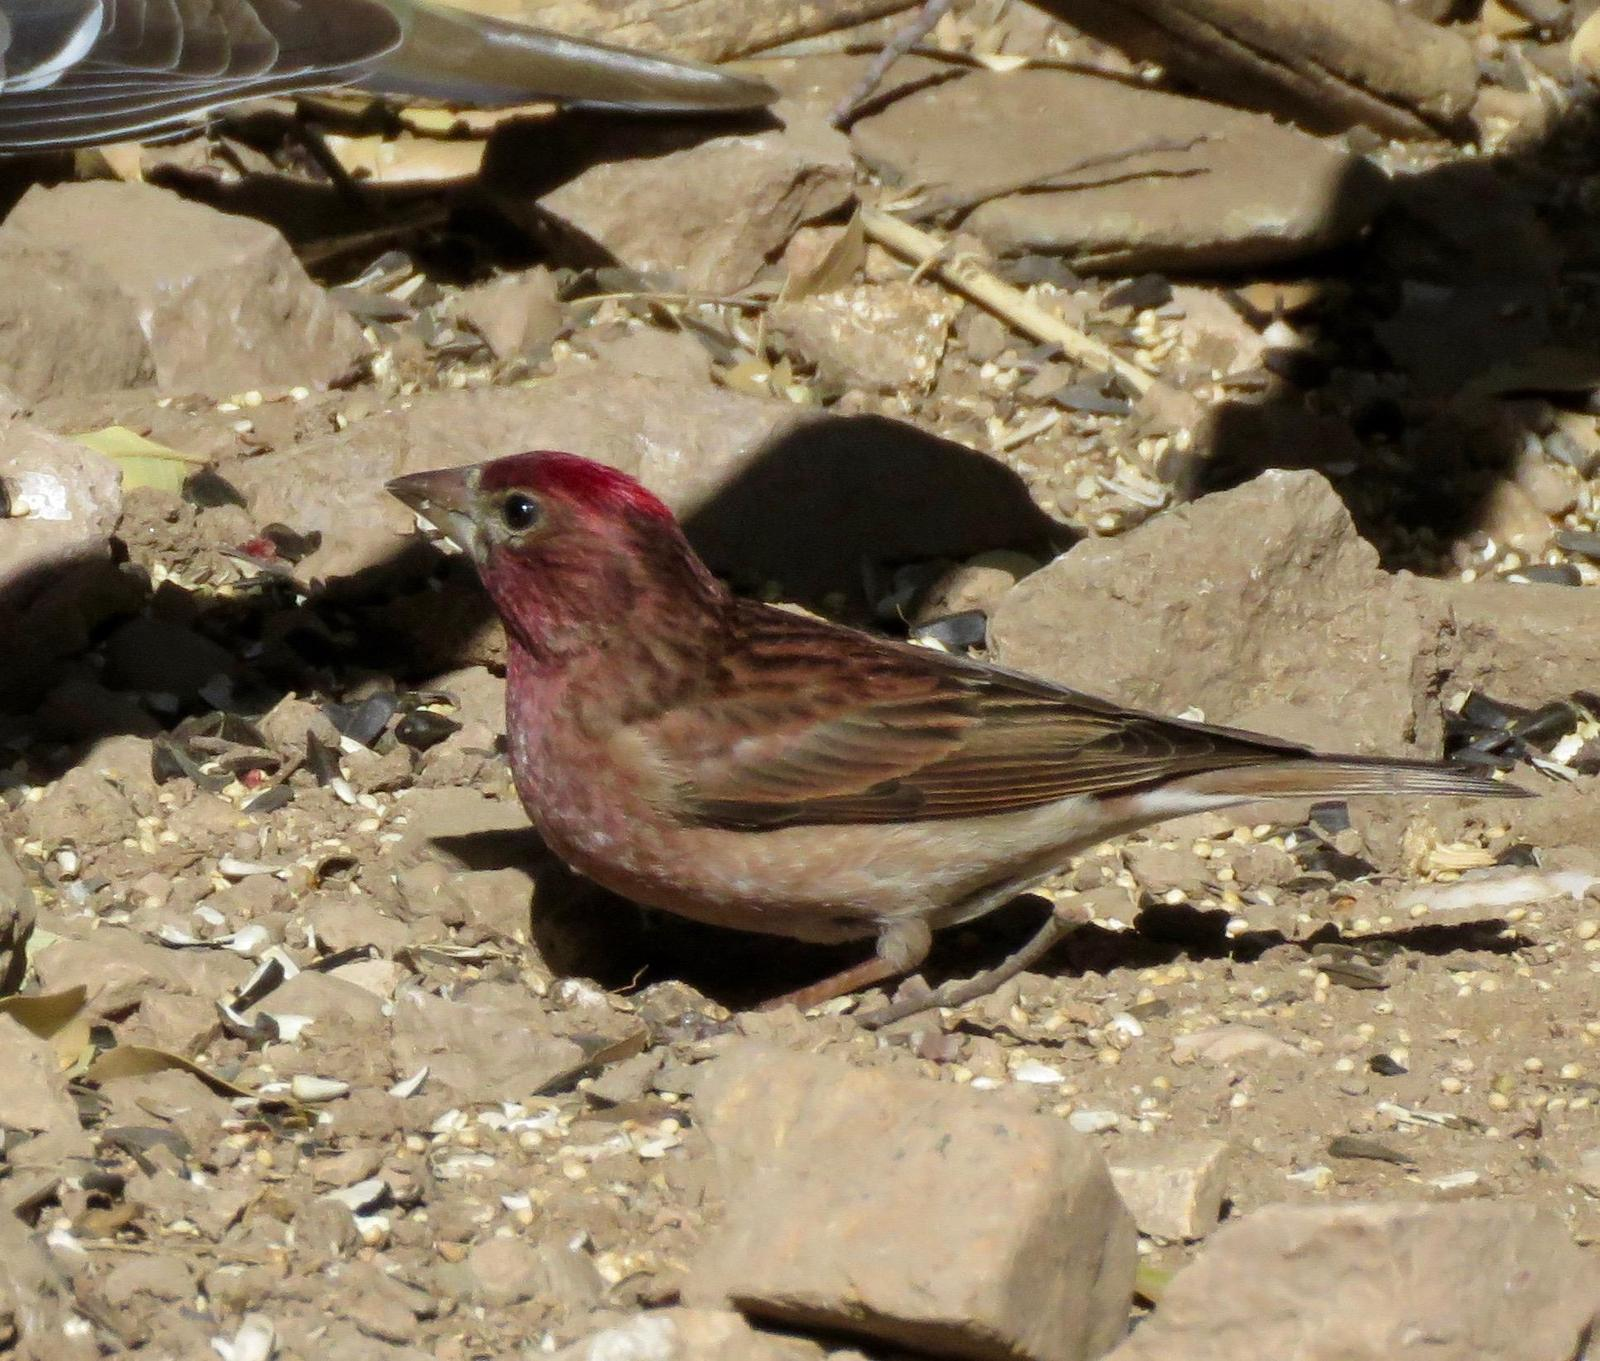 Cassin's Finch Photo by Don Glasco